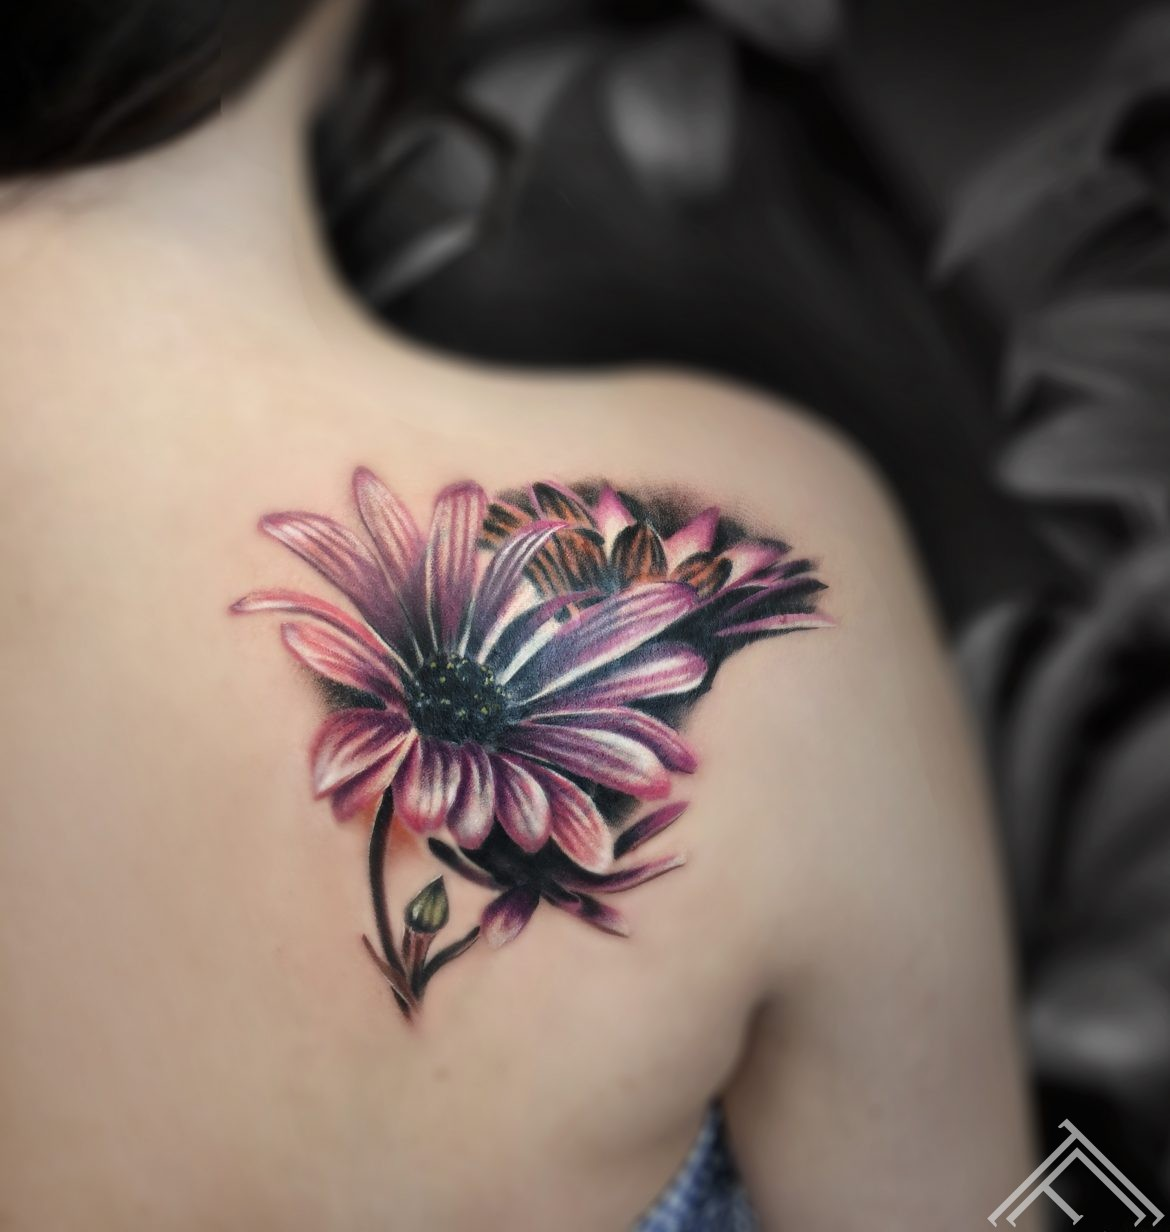 razins-tattoo-flowers-ziedi-art-riga-tattoofrequency